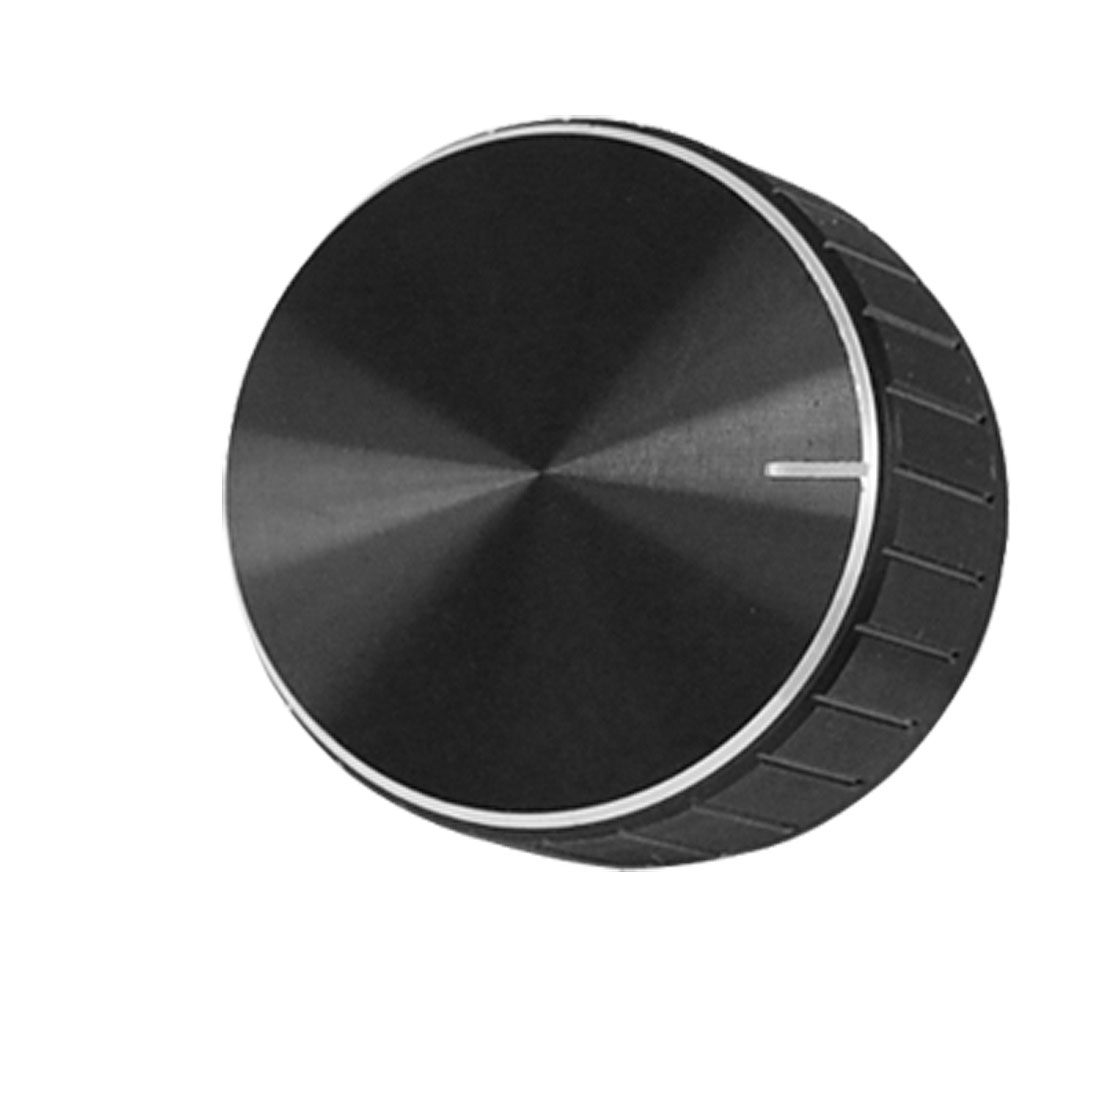 Black Aluminum Volume Control Amplifier Knob Wheel